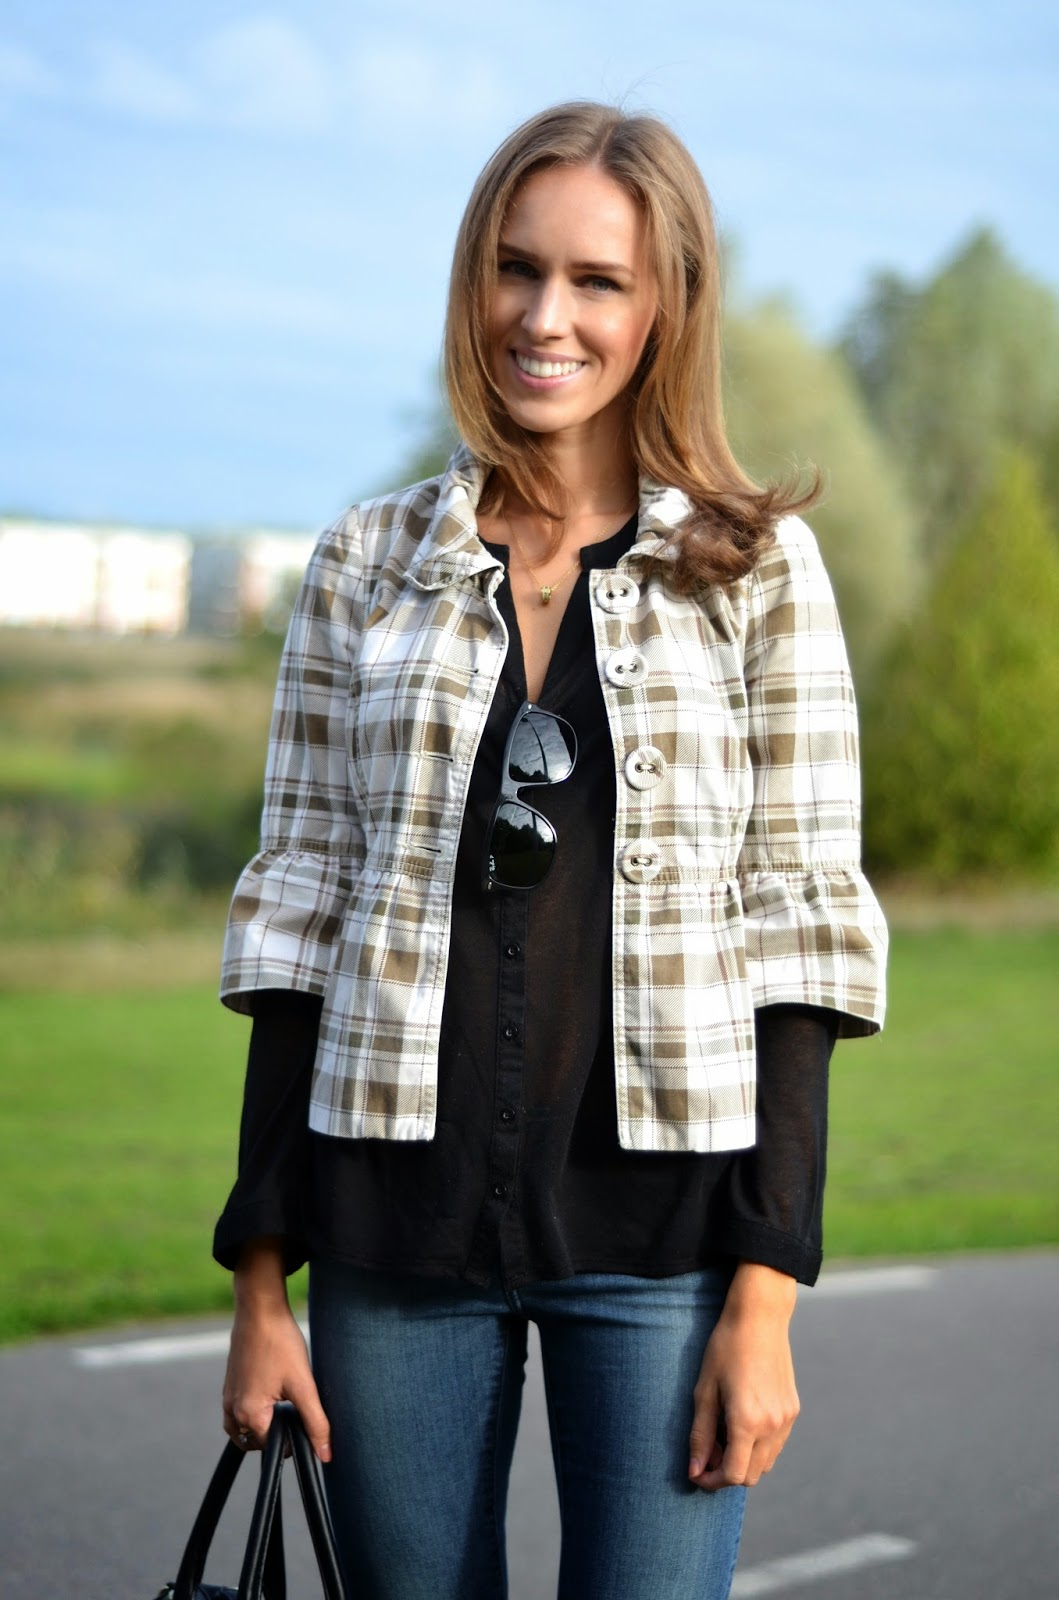 bershka peplum jacket black shirt fall outfit